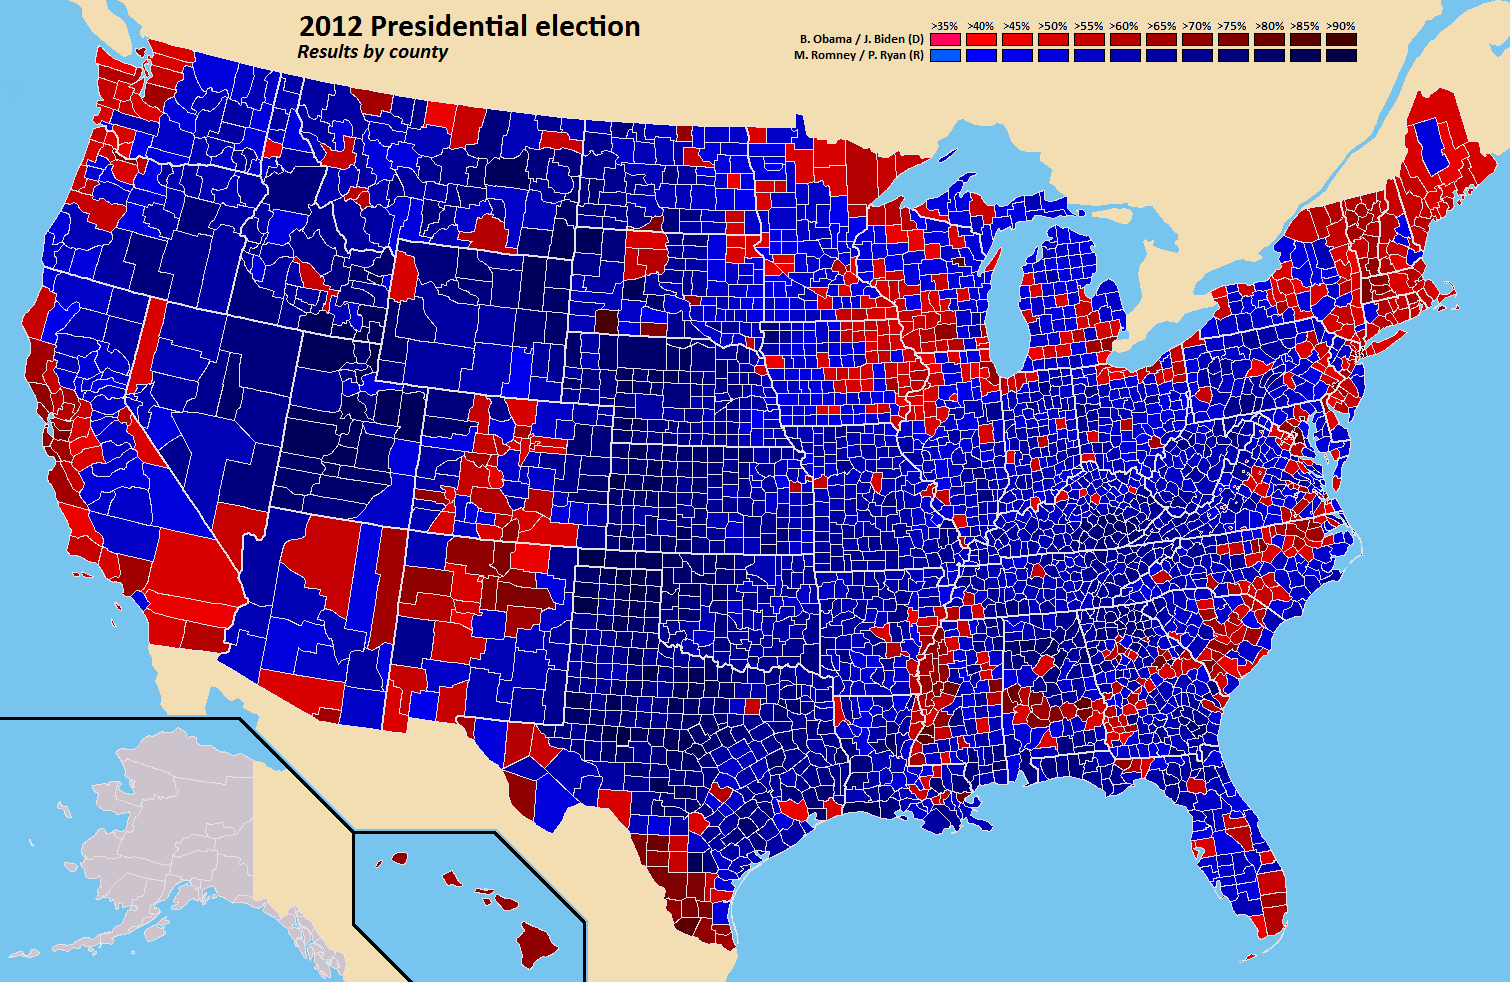 results of the presidential election by county